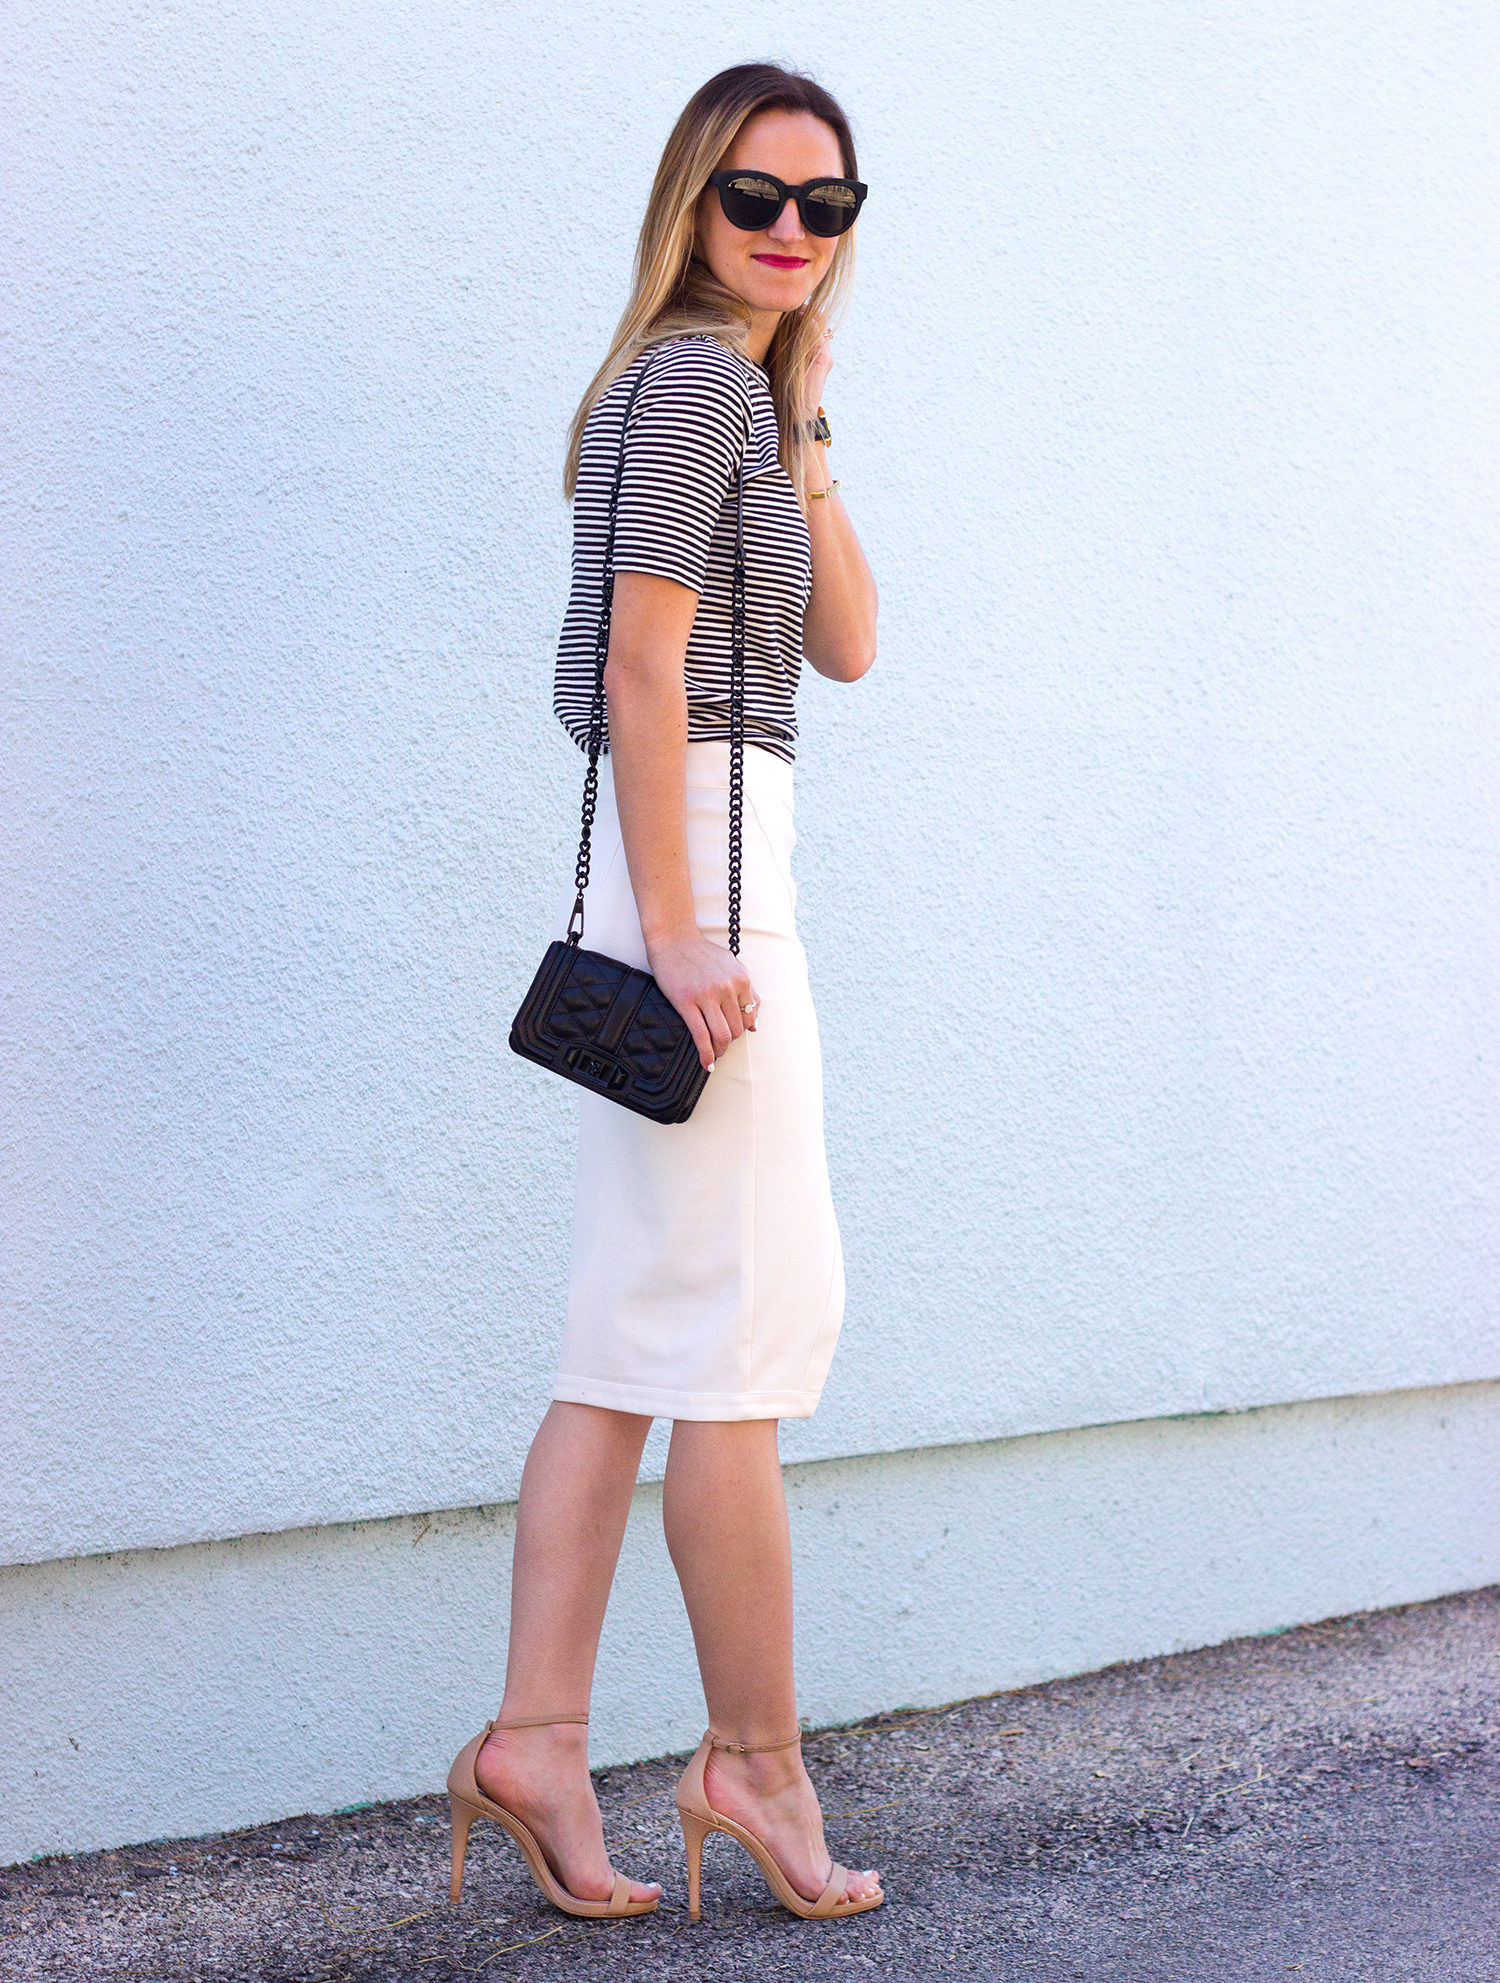 livvyland-blog-olivia-watson-austin-texas-fashion-blogger-steve-madden-stecy-nude-heels-cupcakes-and-cashmere-white-pencil-skirt-madewell-striped-tee-shirt-5